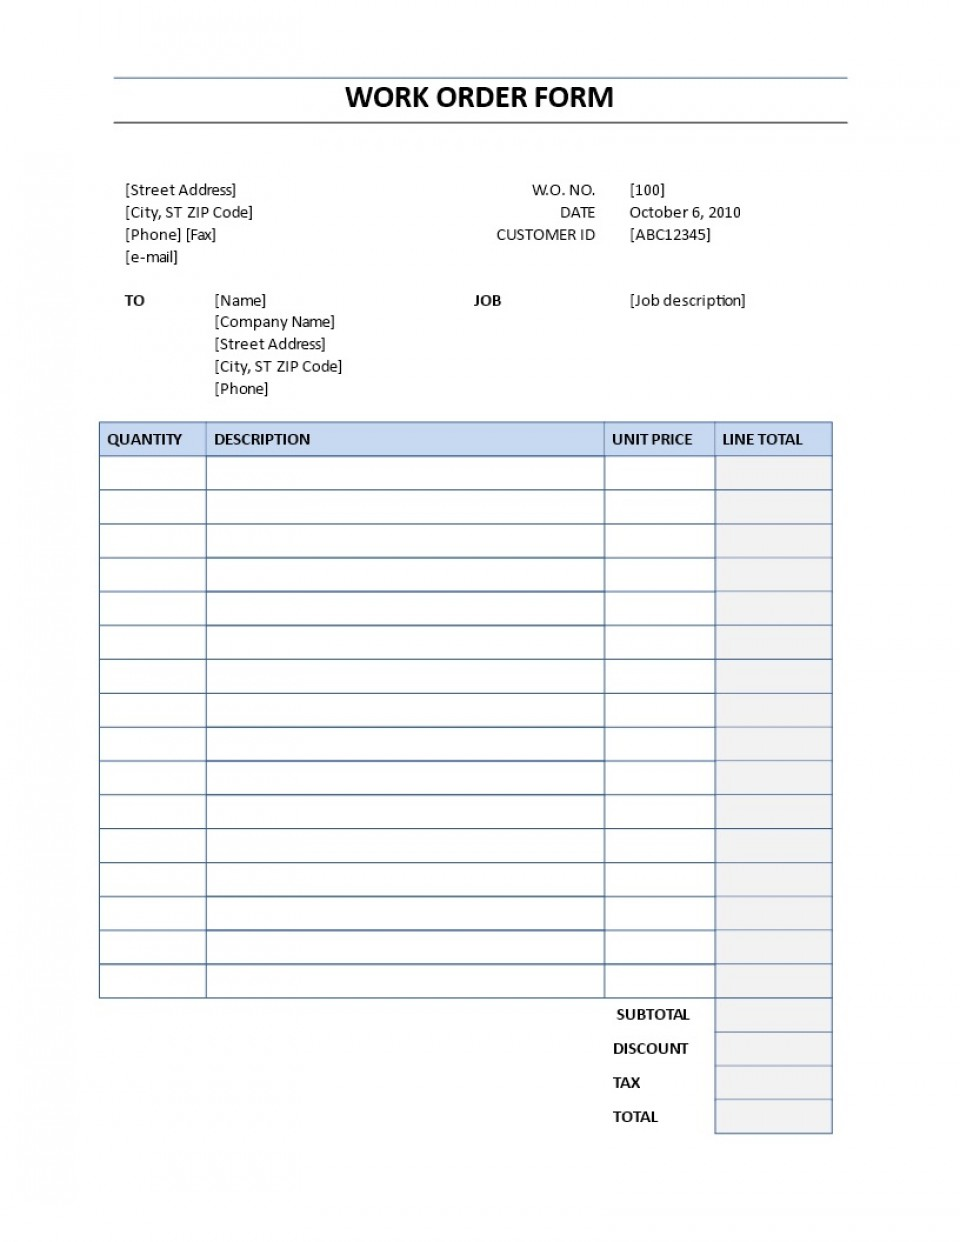 001 Unbelievable Work Order Form Template High Definition  Request Excel Advertising Company Free960